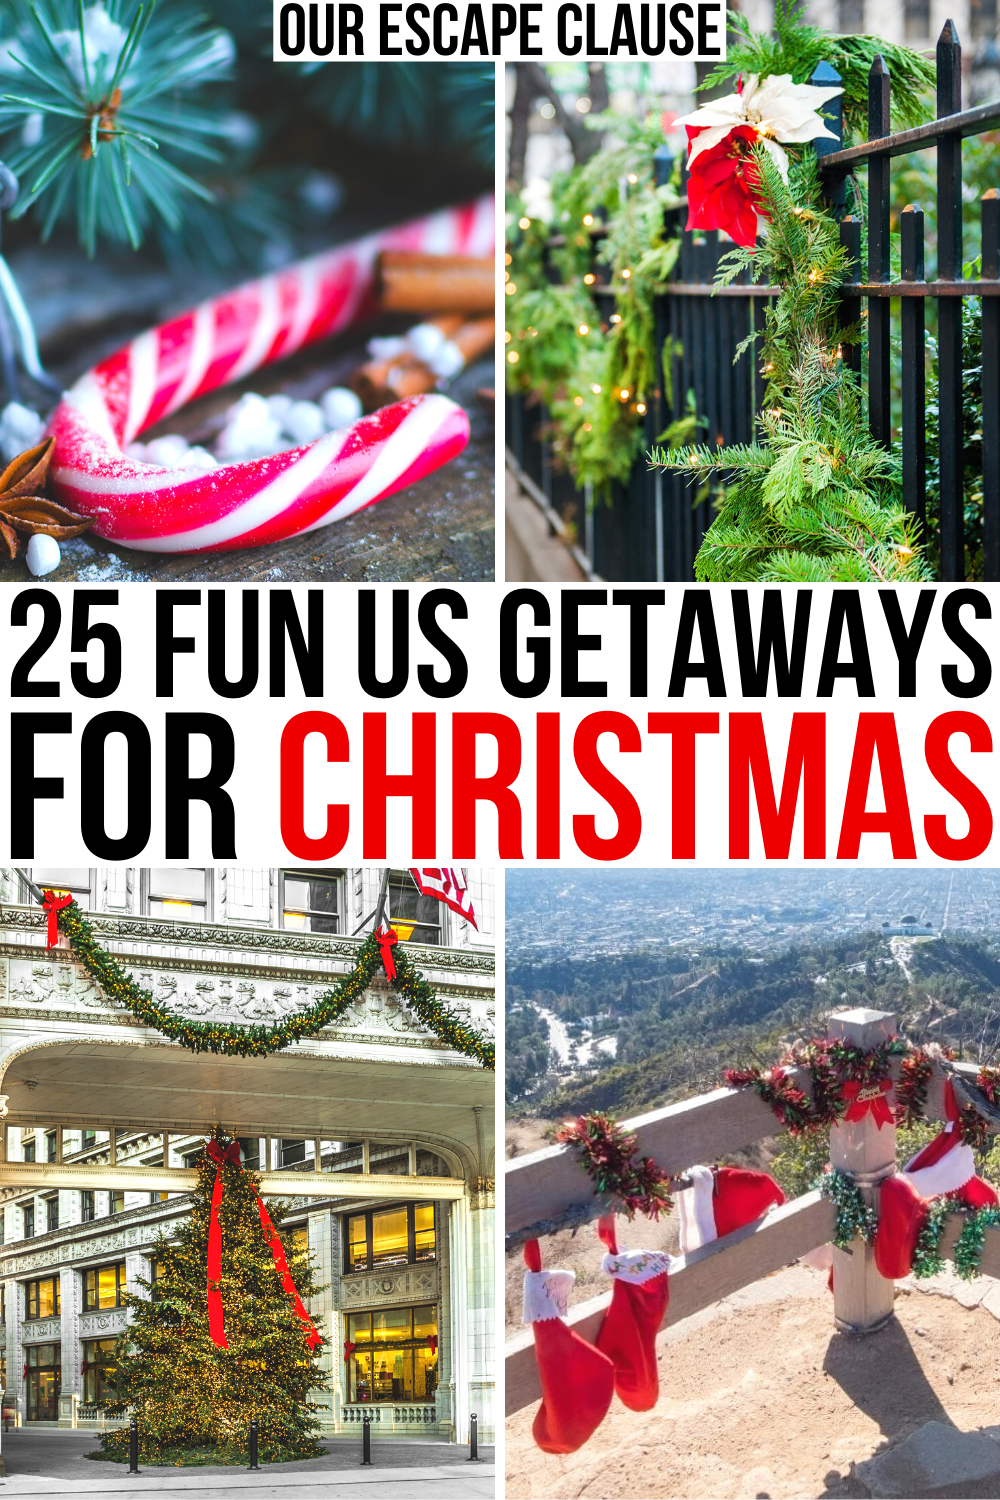 25 Best Christmas Vacations In The Usa Our Escape Clause In 2020 Best Christmas Vacations Christmas Travel Christmas Vacation Destinations